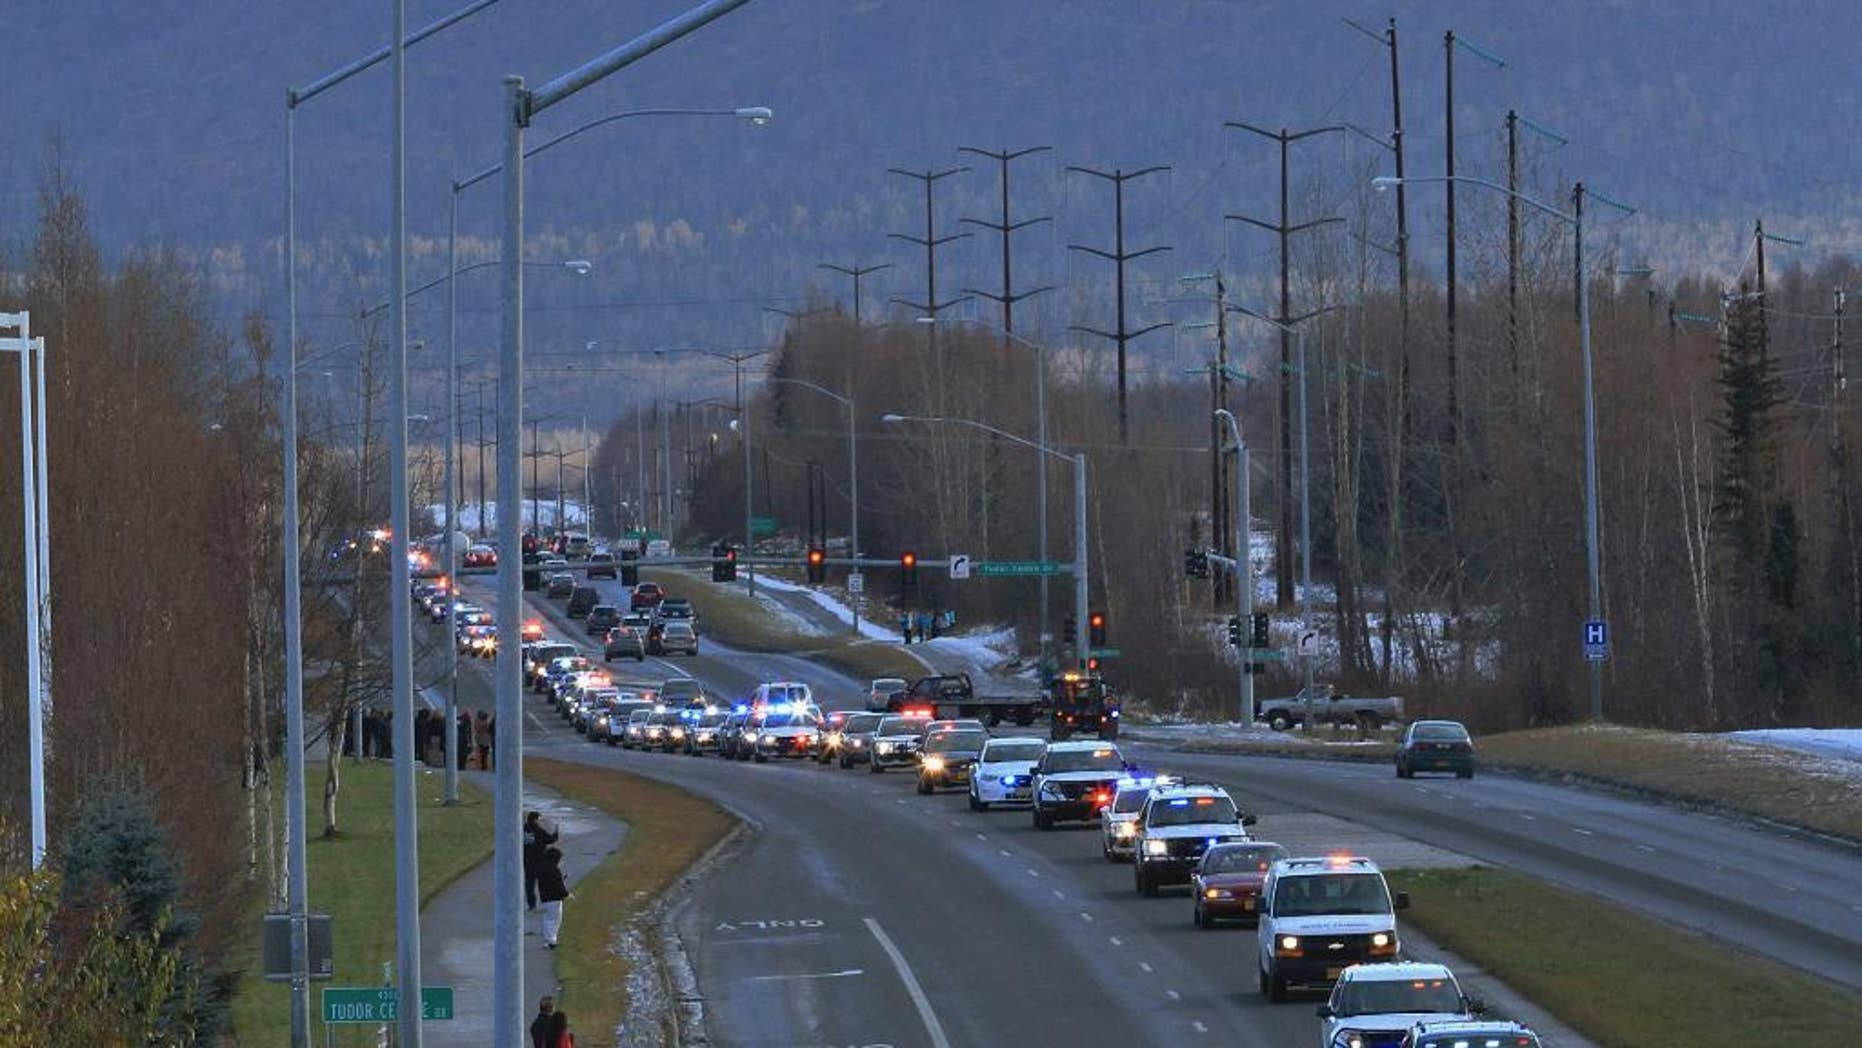 A motorcade of police, fire and emergency responder vehicles escorts a car carrying the body of Fairbanks Police Sgt. Allen Brandt to Ted Stevens Anchorage International Airport for a flight to Fairbanks on Tuesday, Nov. 1, 2016, in Anchorage, Alaska. Brandt was on duty Oct. 16 when he was shot six times. He died Friday in Anchorage after complications from surgery. His funeral is scheduled for Sunday in Fairbanks. (AP Photo/Dan Joling)